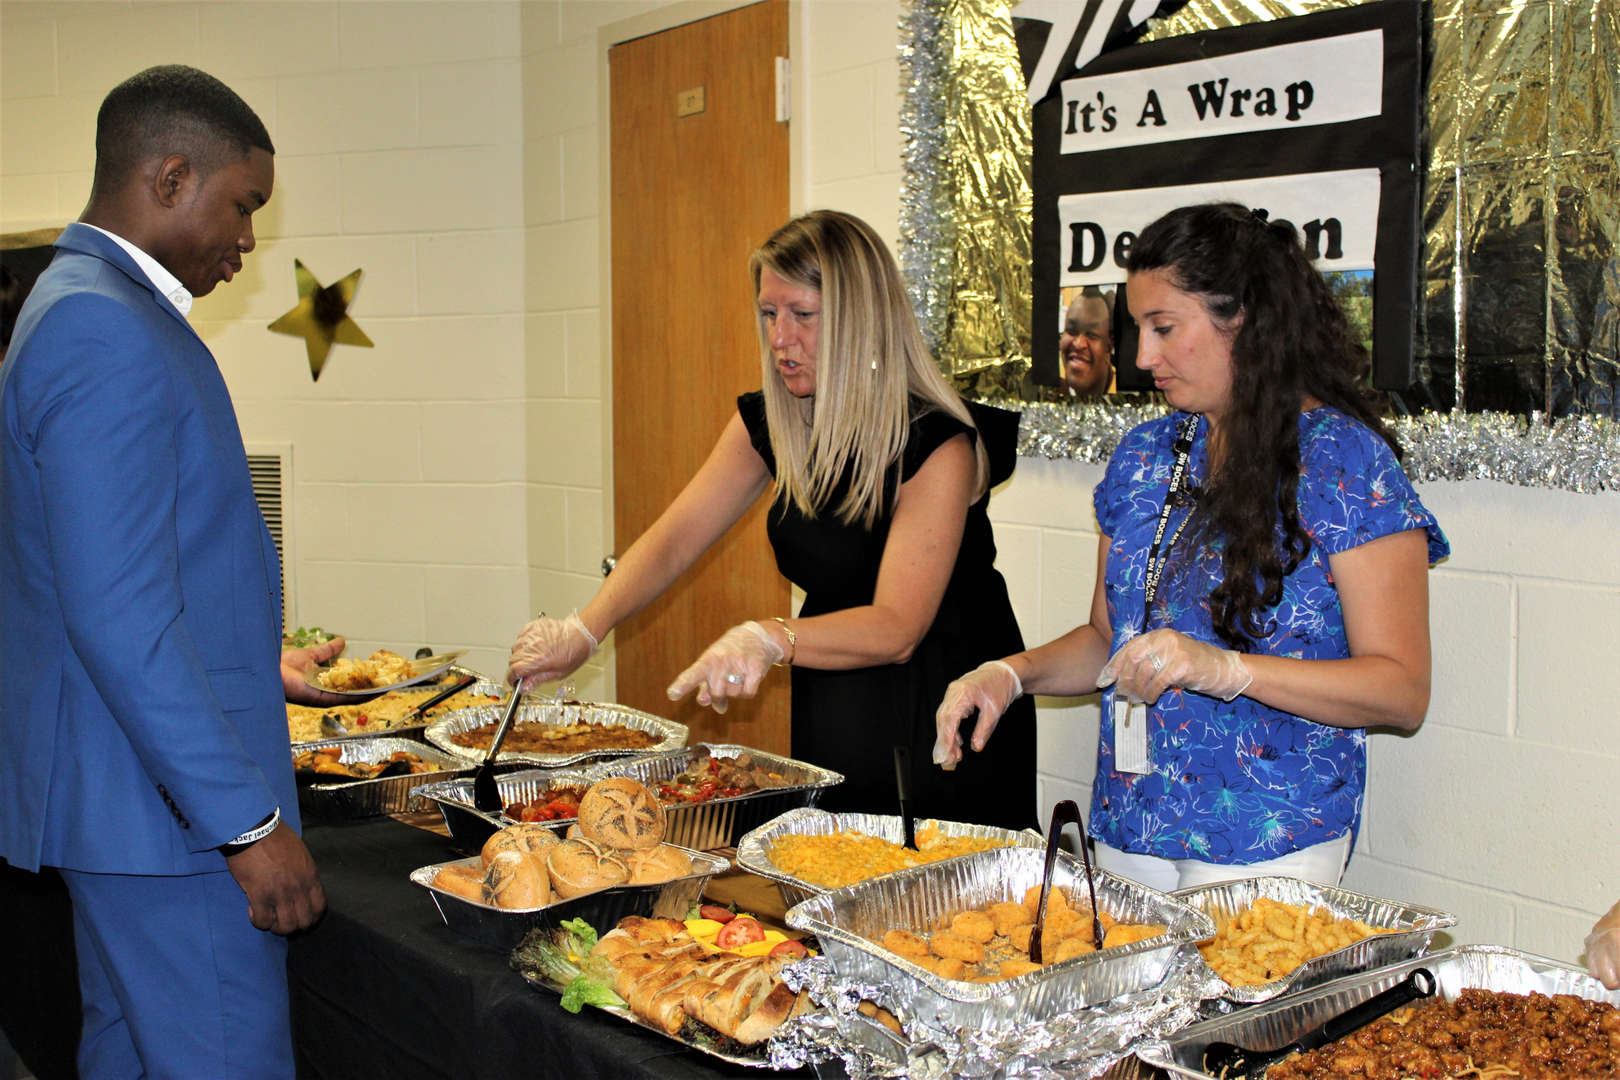 Staff members serve food they made.